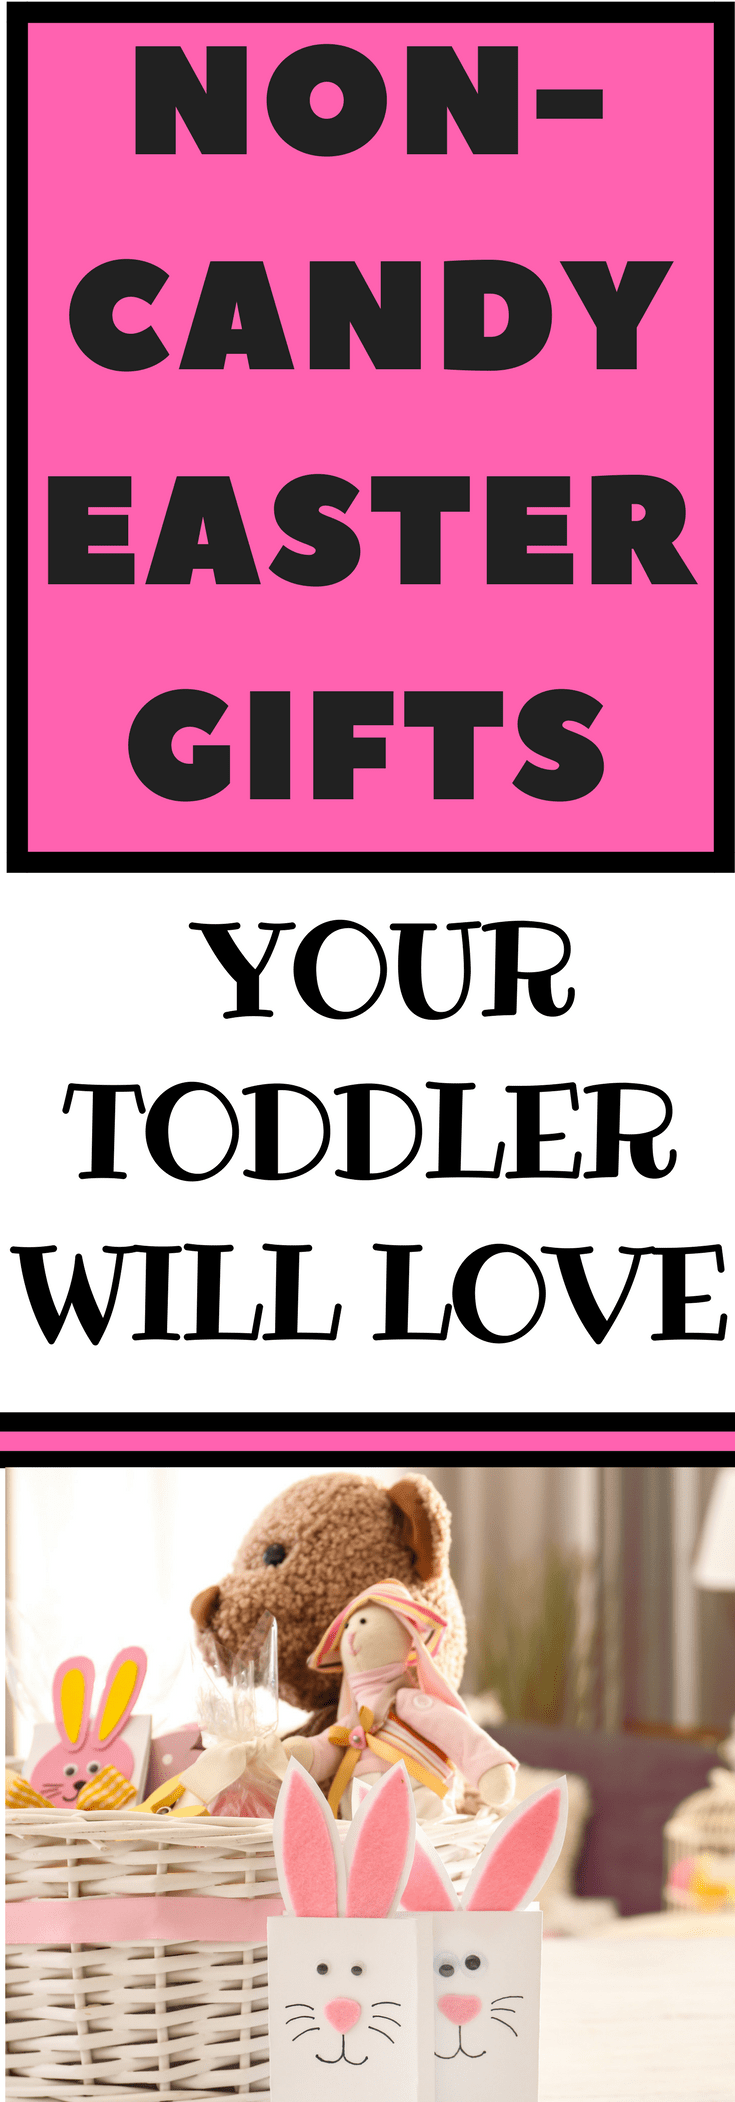 Non candy easter gifts for toddlers easter and babies non candy easter gifts for toddlers negle Choice Image